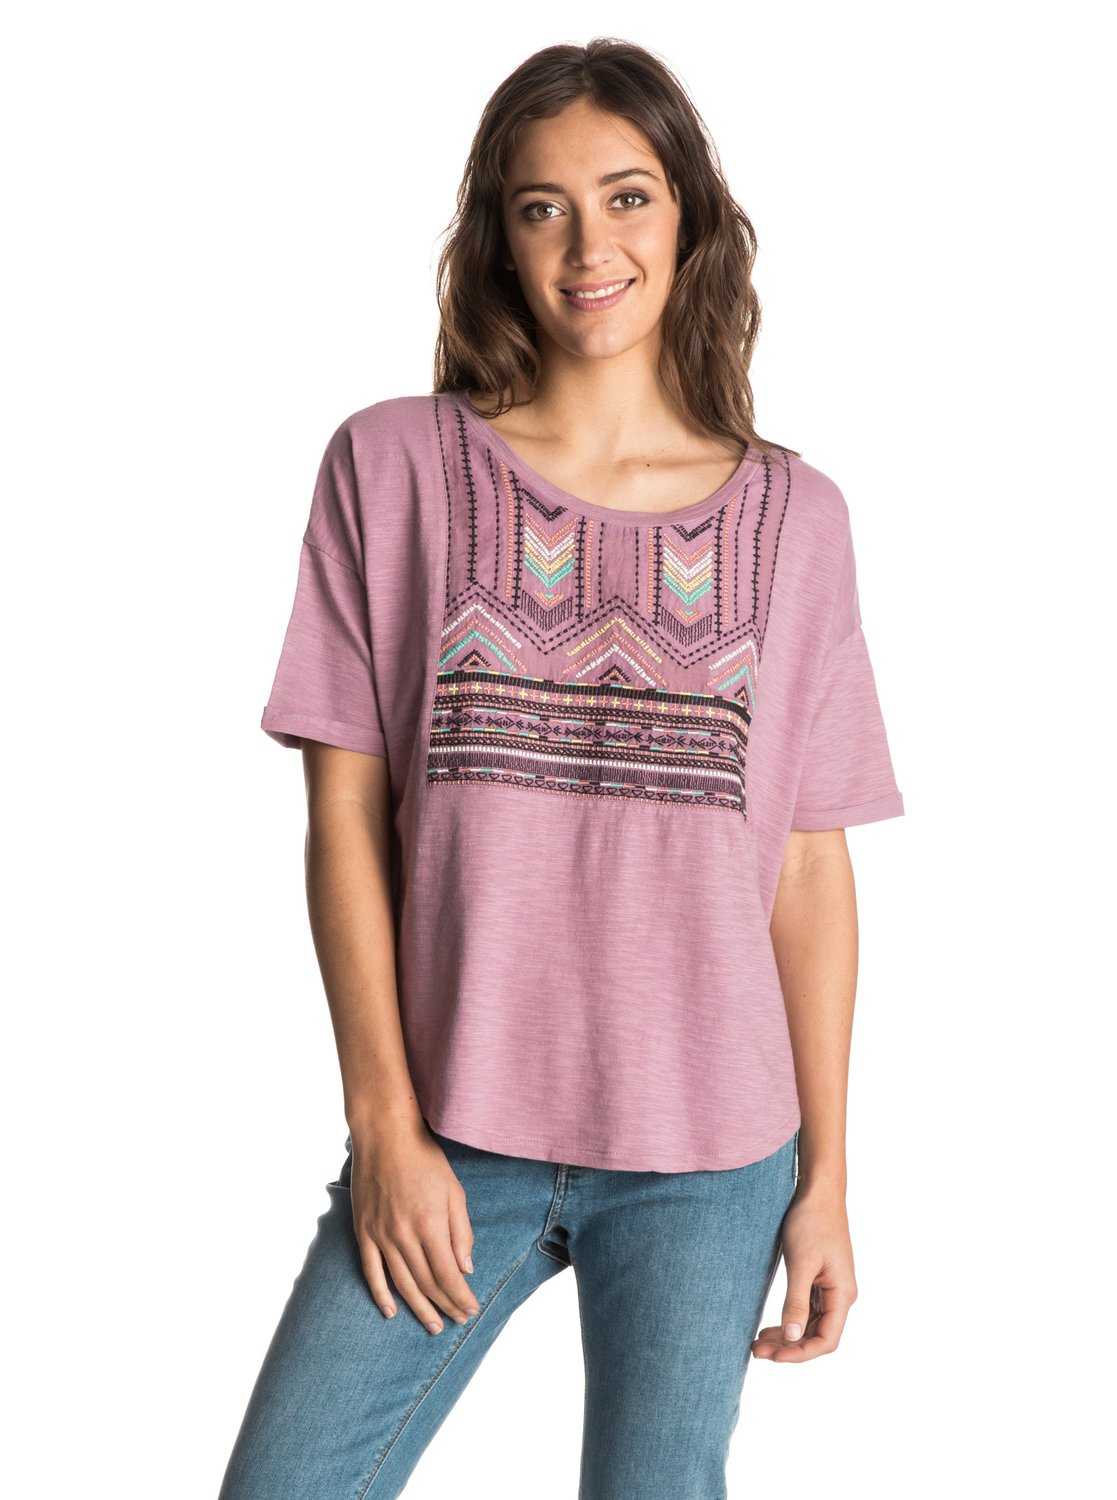 Women's Big Sur Dream T-Shirt от Roxy